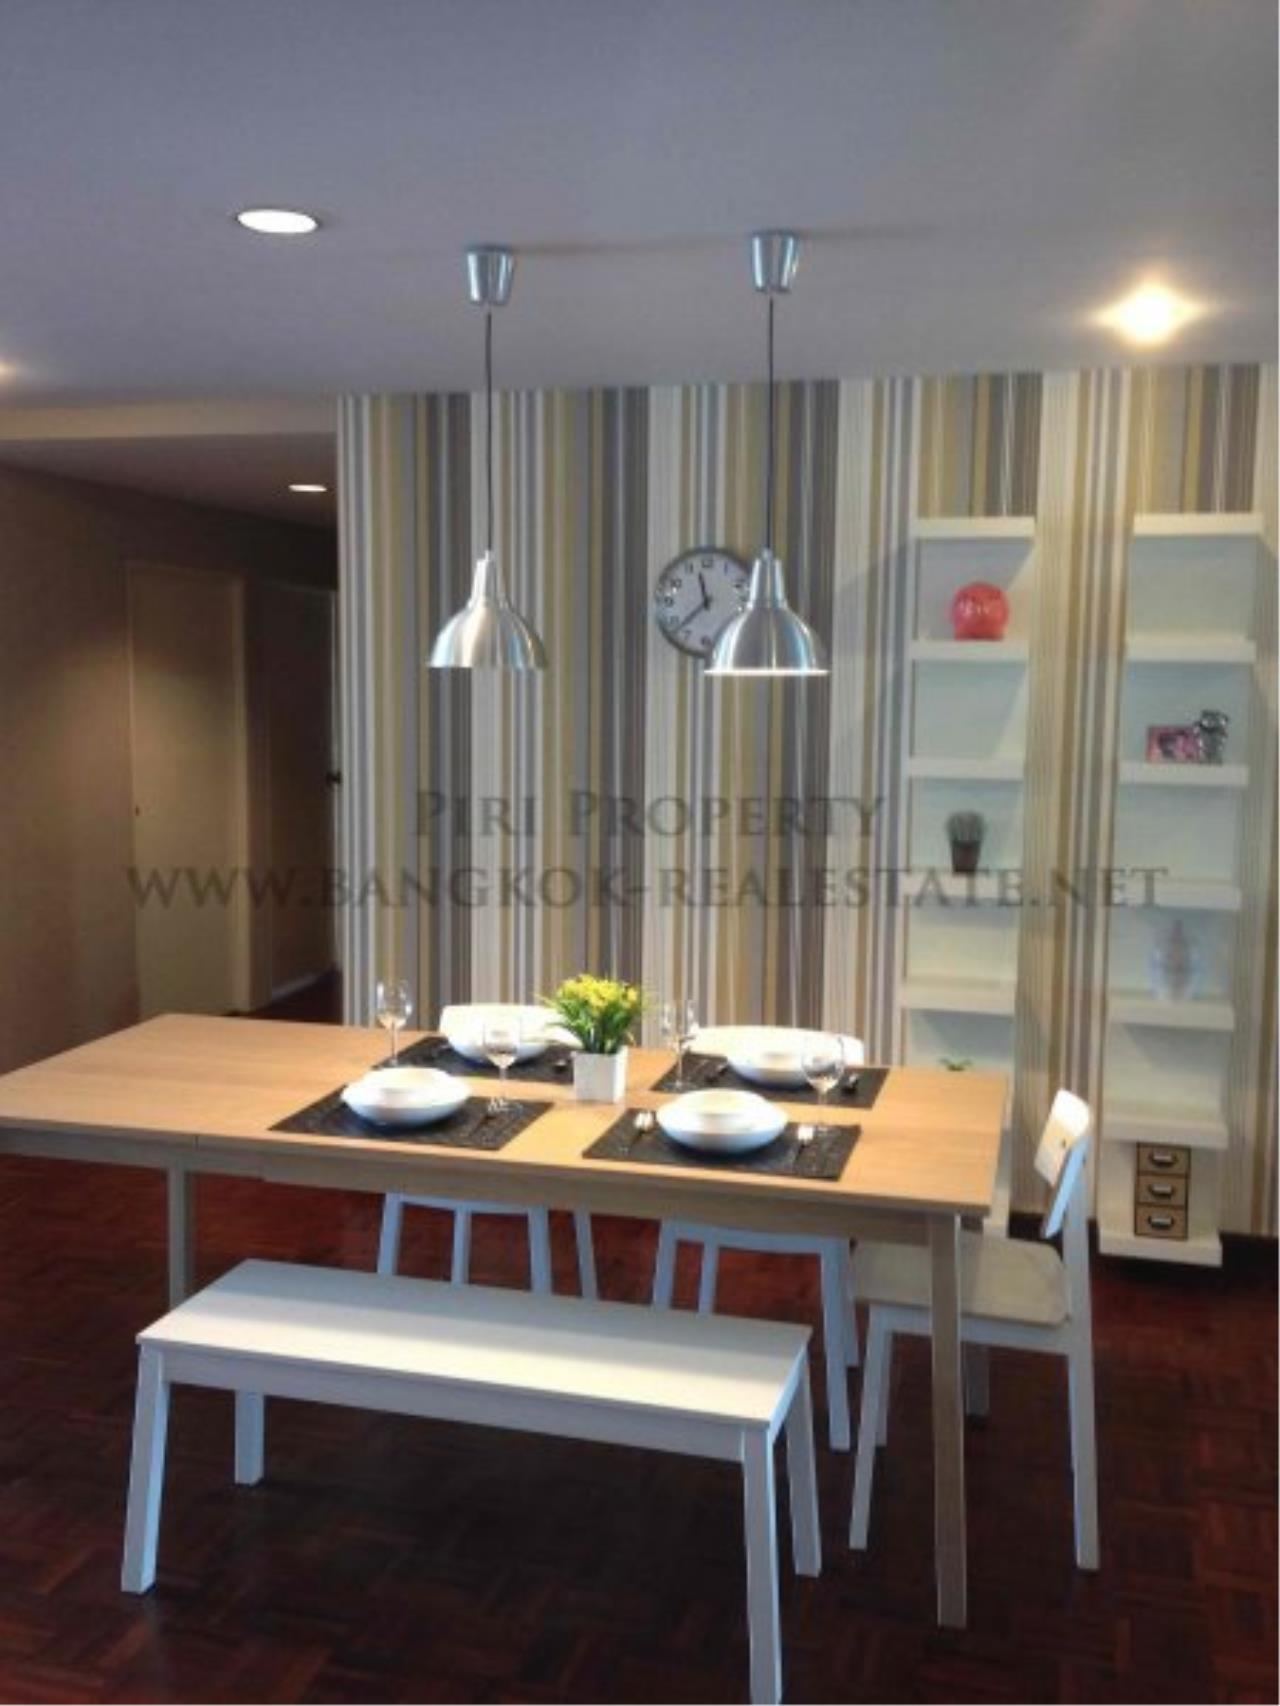 Piri Property Agency's DS Tower 2 - Renovated and Condo for Sale - 3BR 1